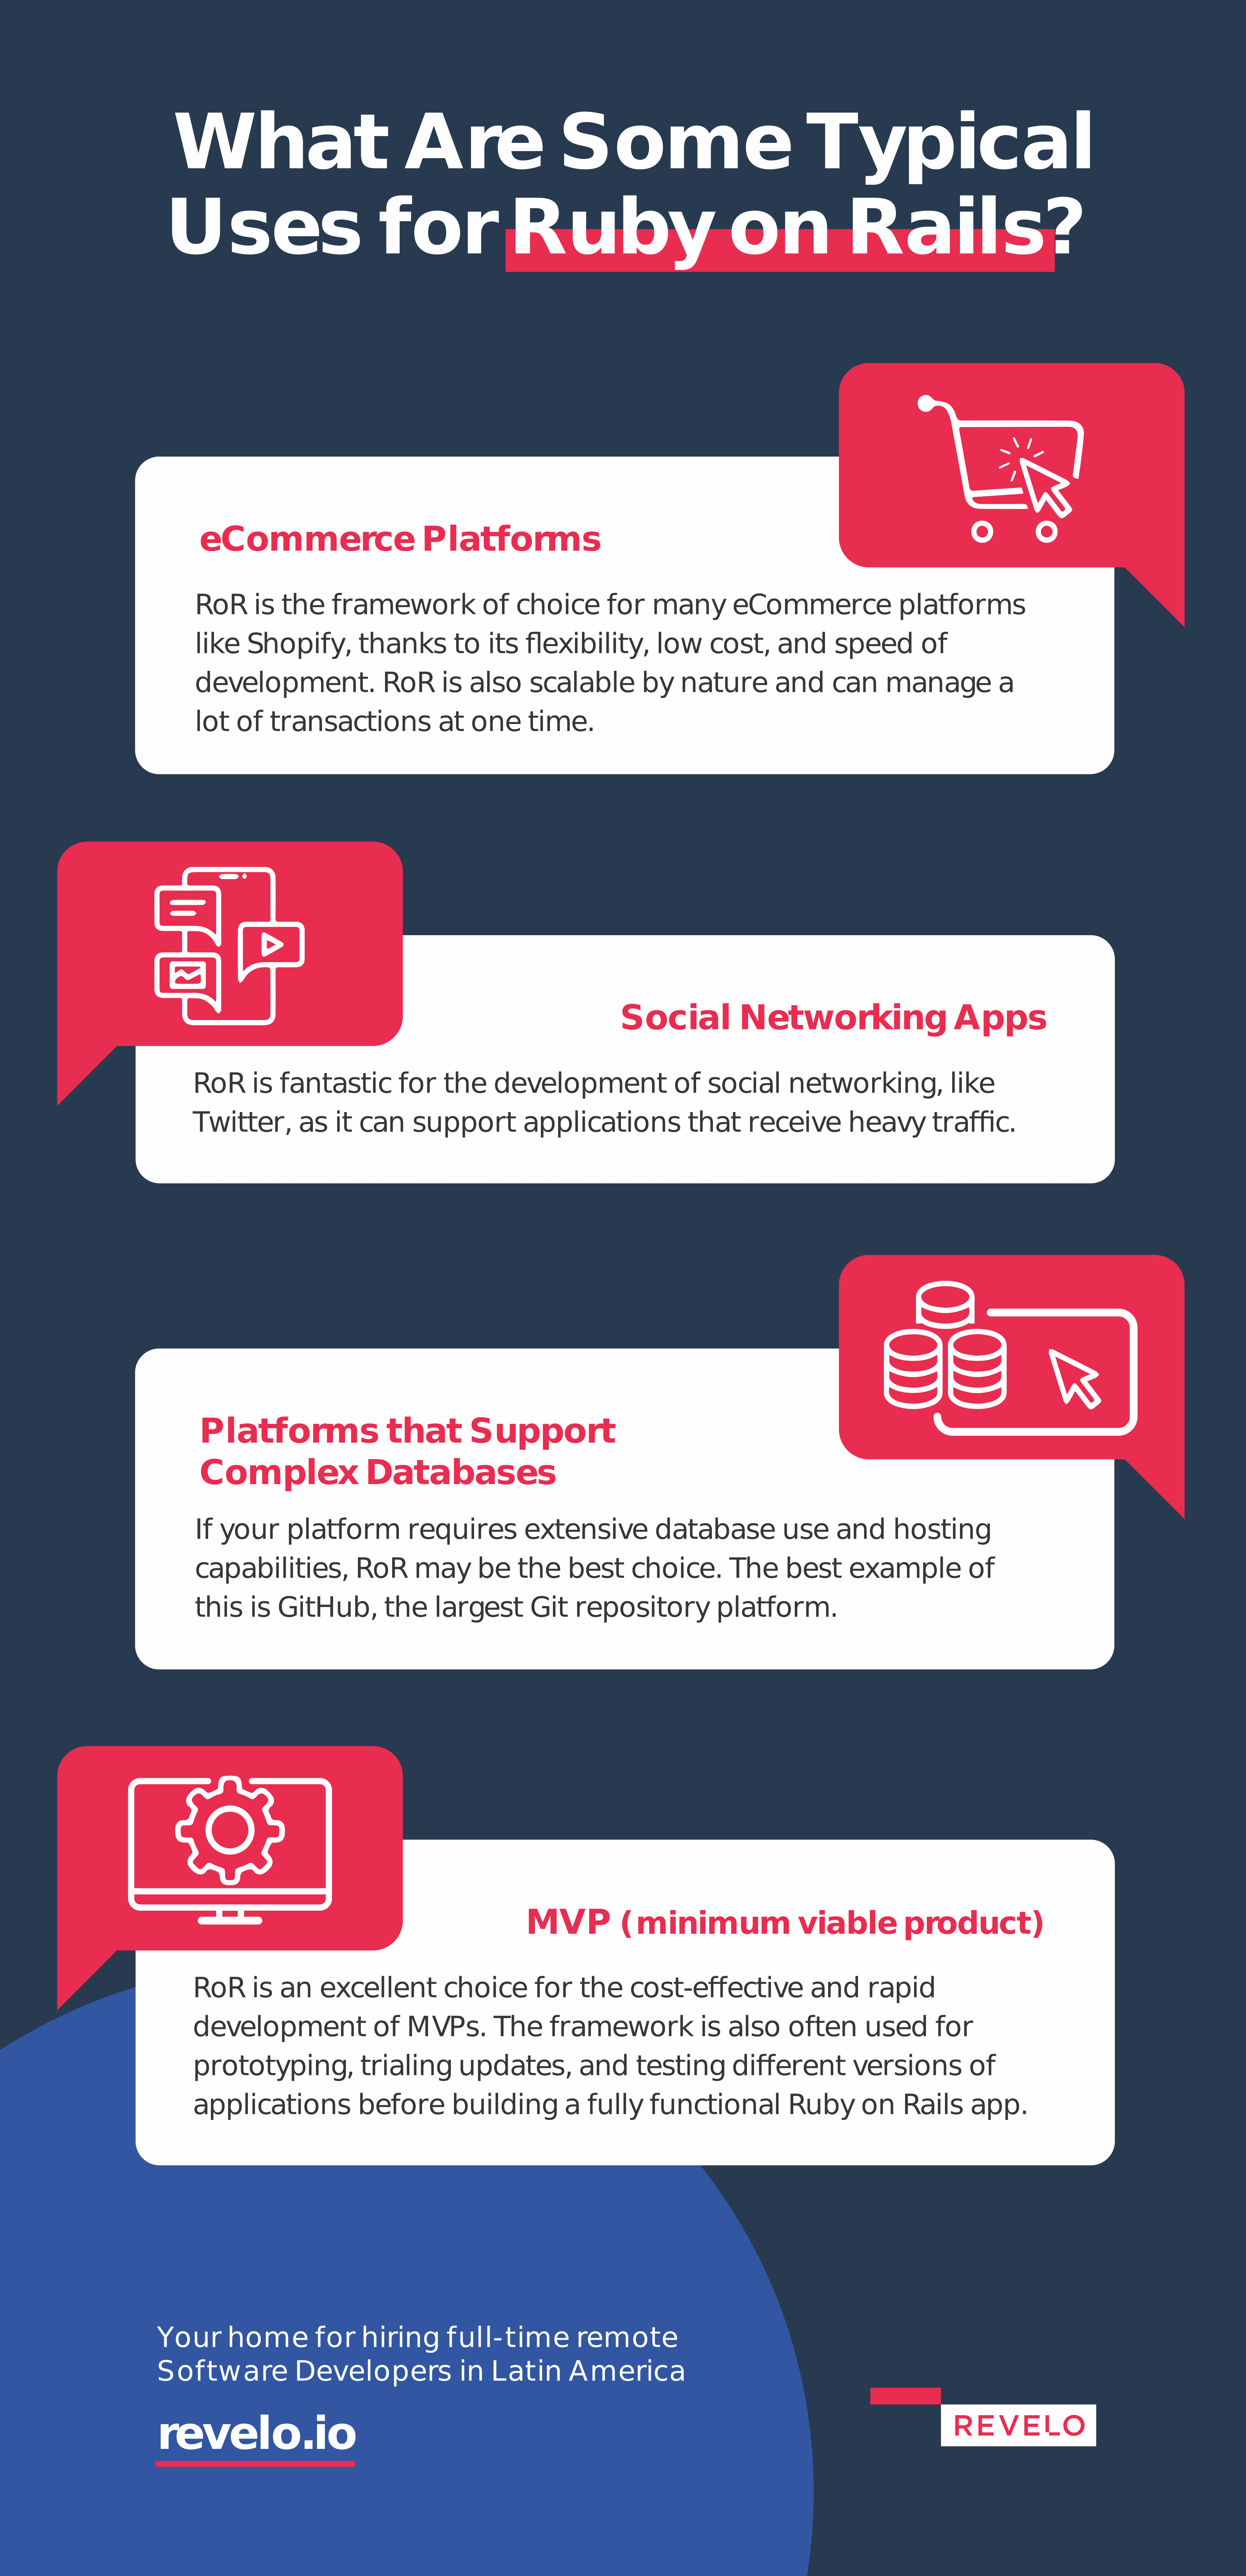 Typical Uses for Ruby on Rails